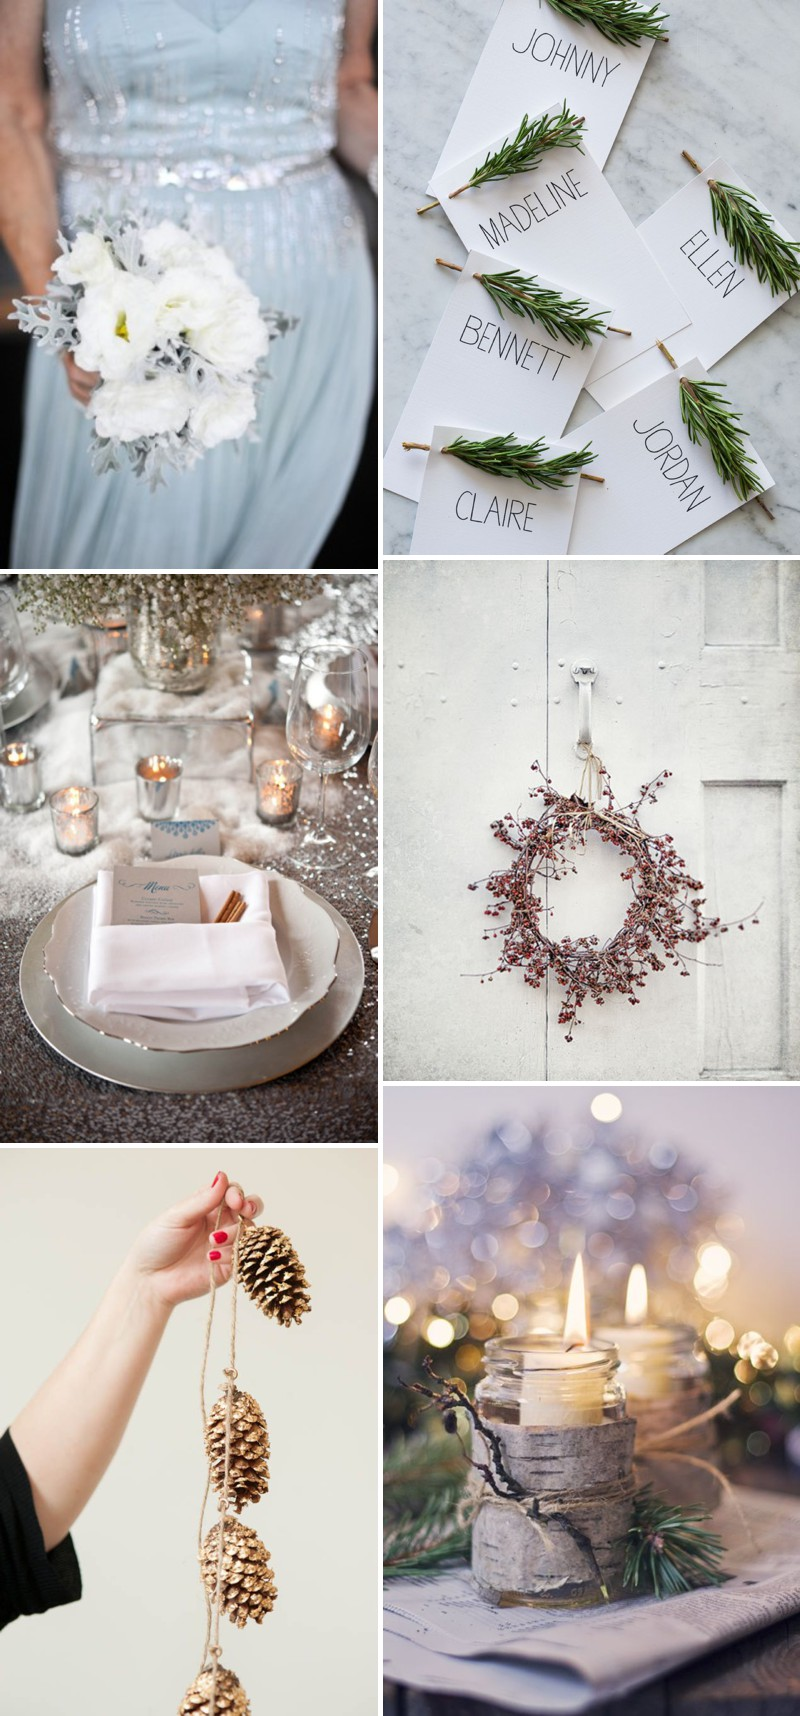 An Exquisite Winter Wedding Theme By Rock My Wedding's Pinterest Competition Winner 2